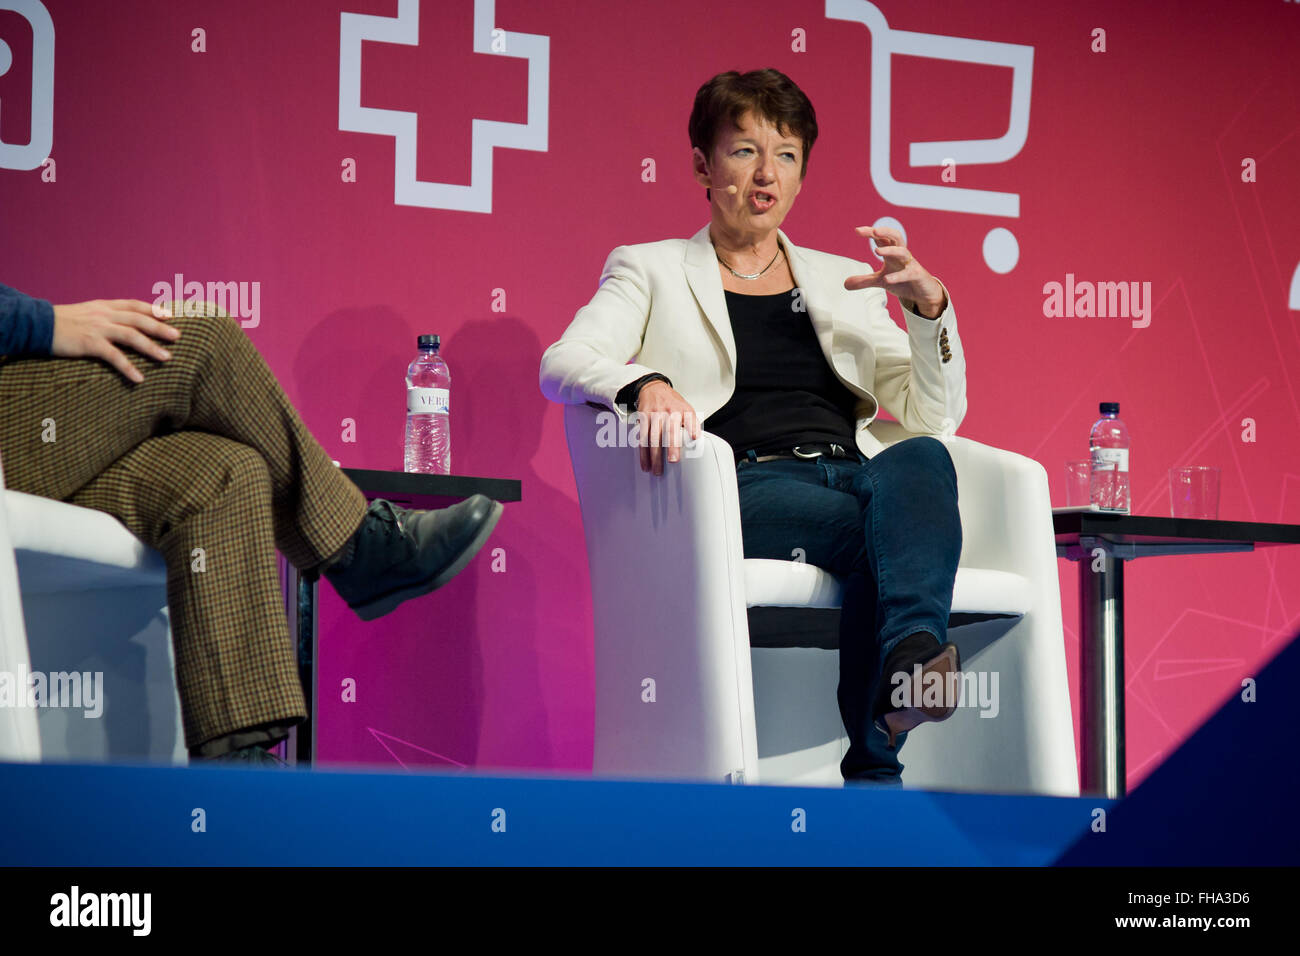 Barcelona, Spain. 24th February, 2016. CEO of Getty Images Dawn Airey speaks during a conference about Mobile Commerce - Stock Image